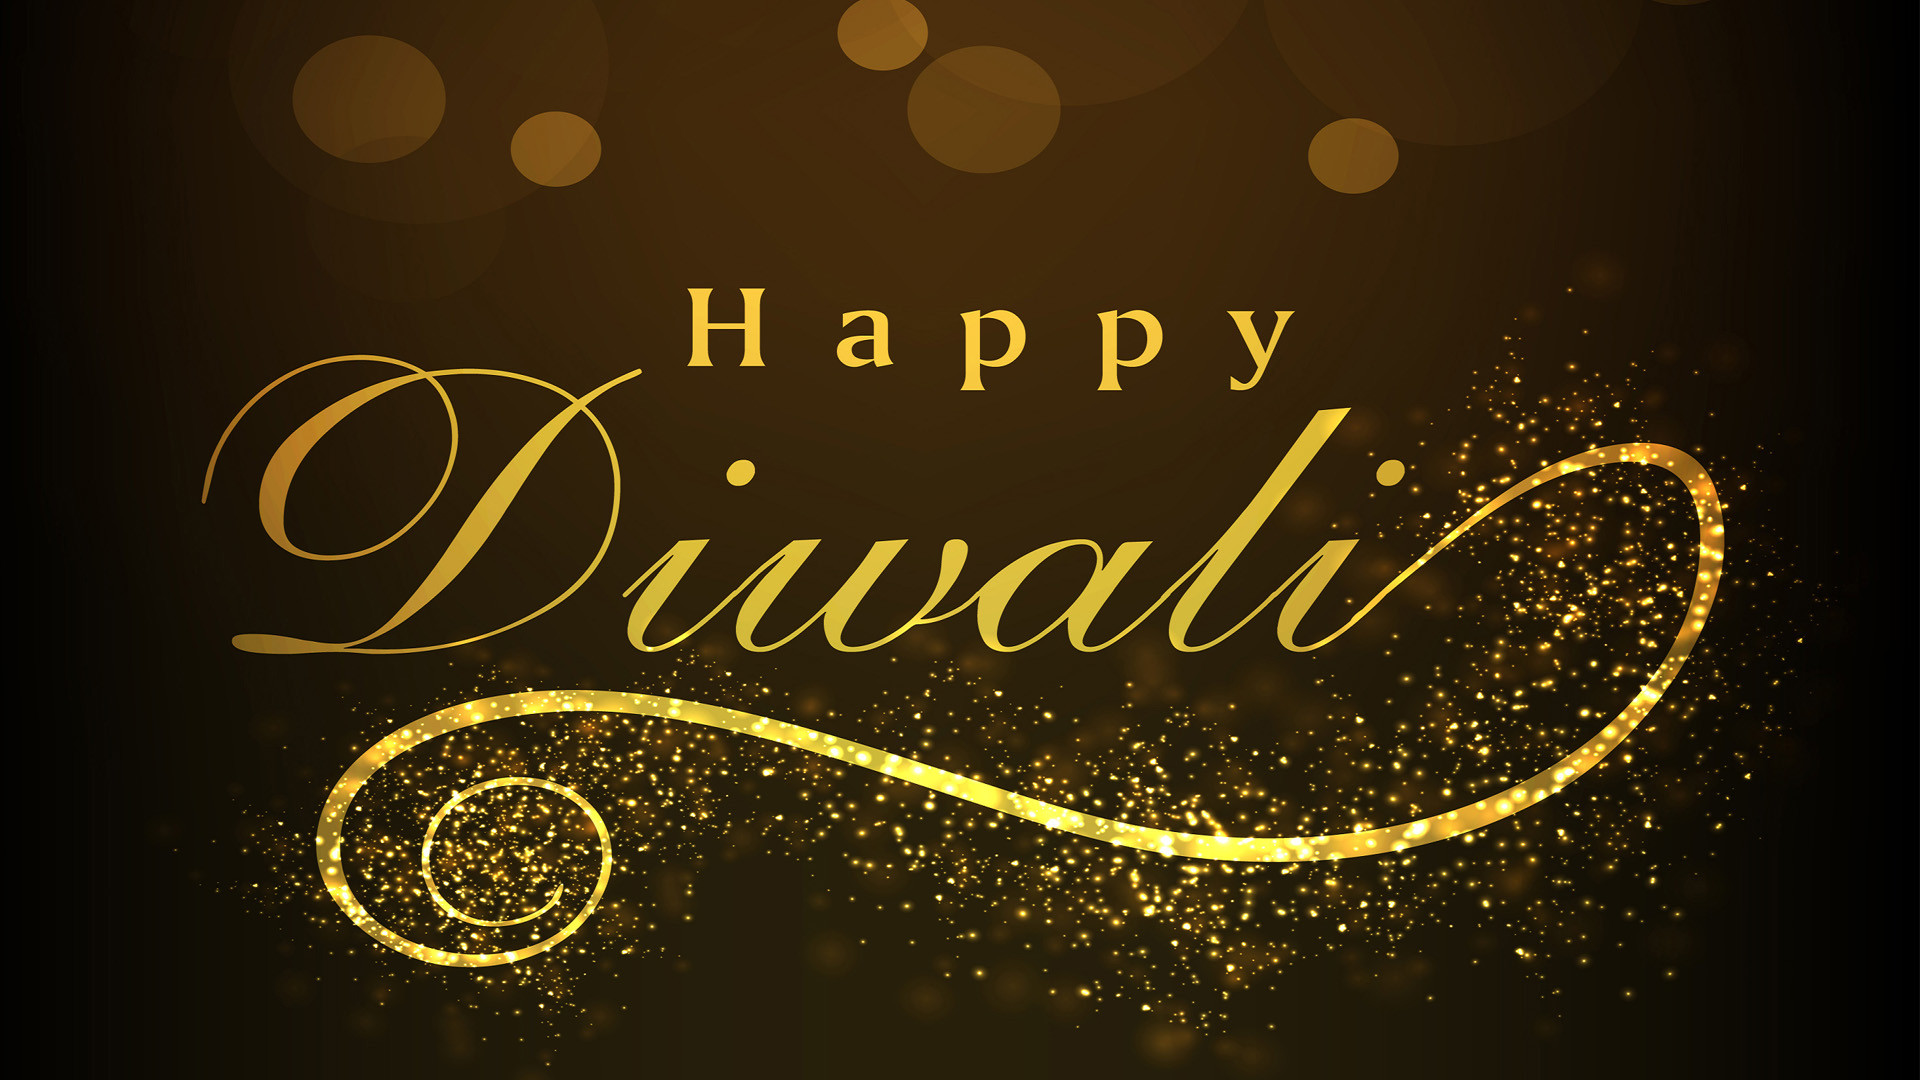 1920x1080 diwali 1080p wallpaper. shubh diwali HD wallpapers